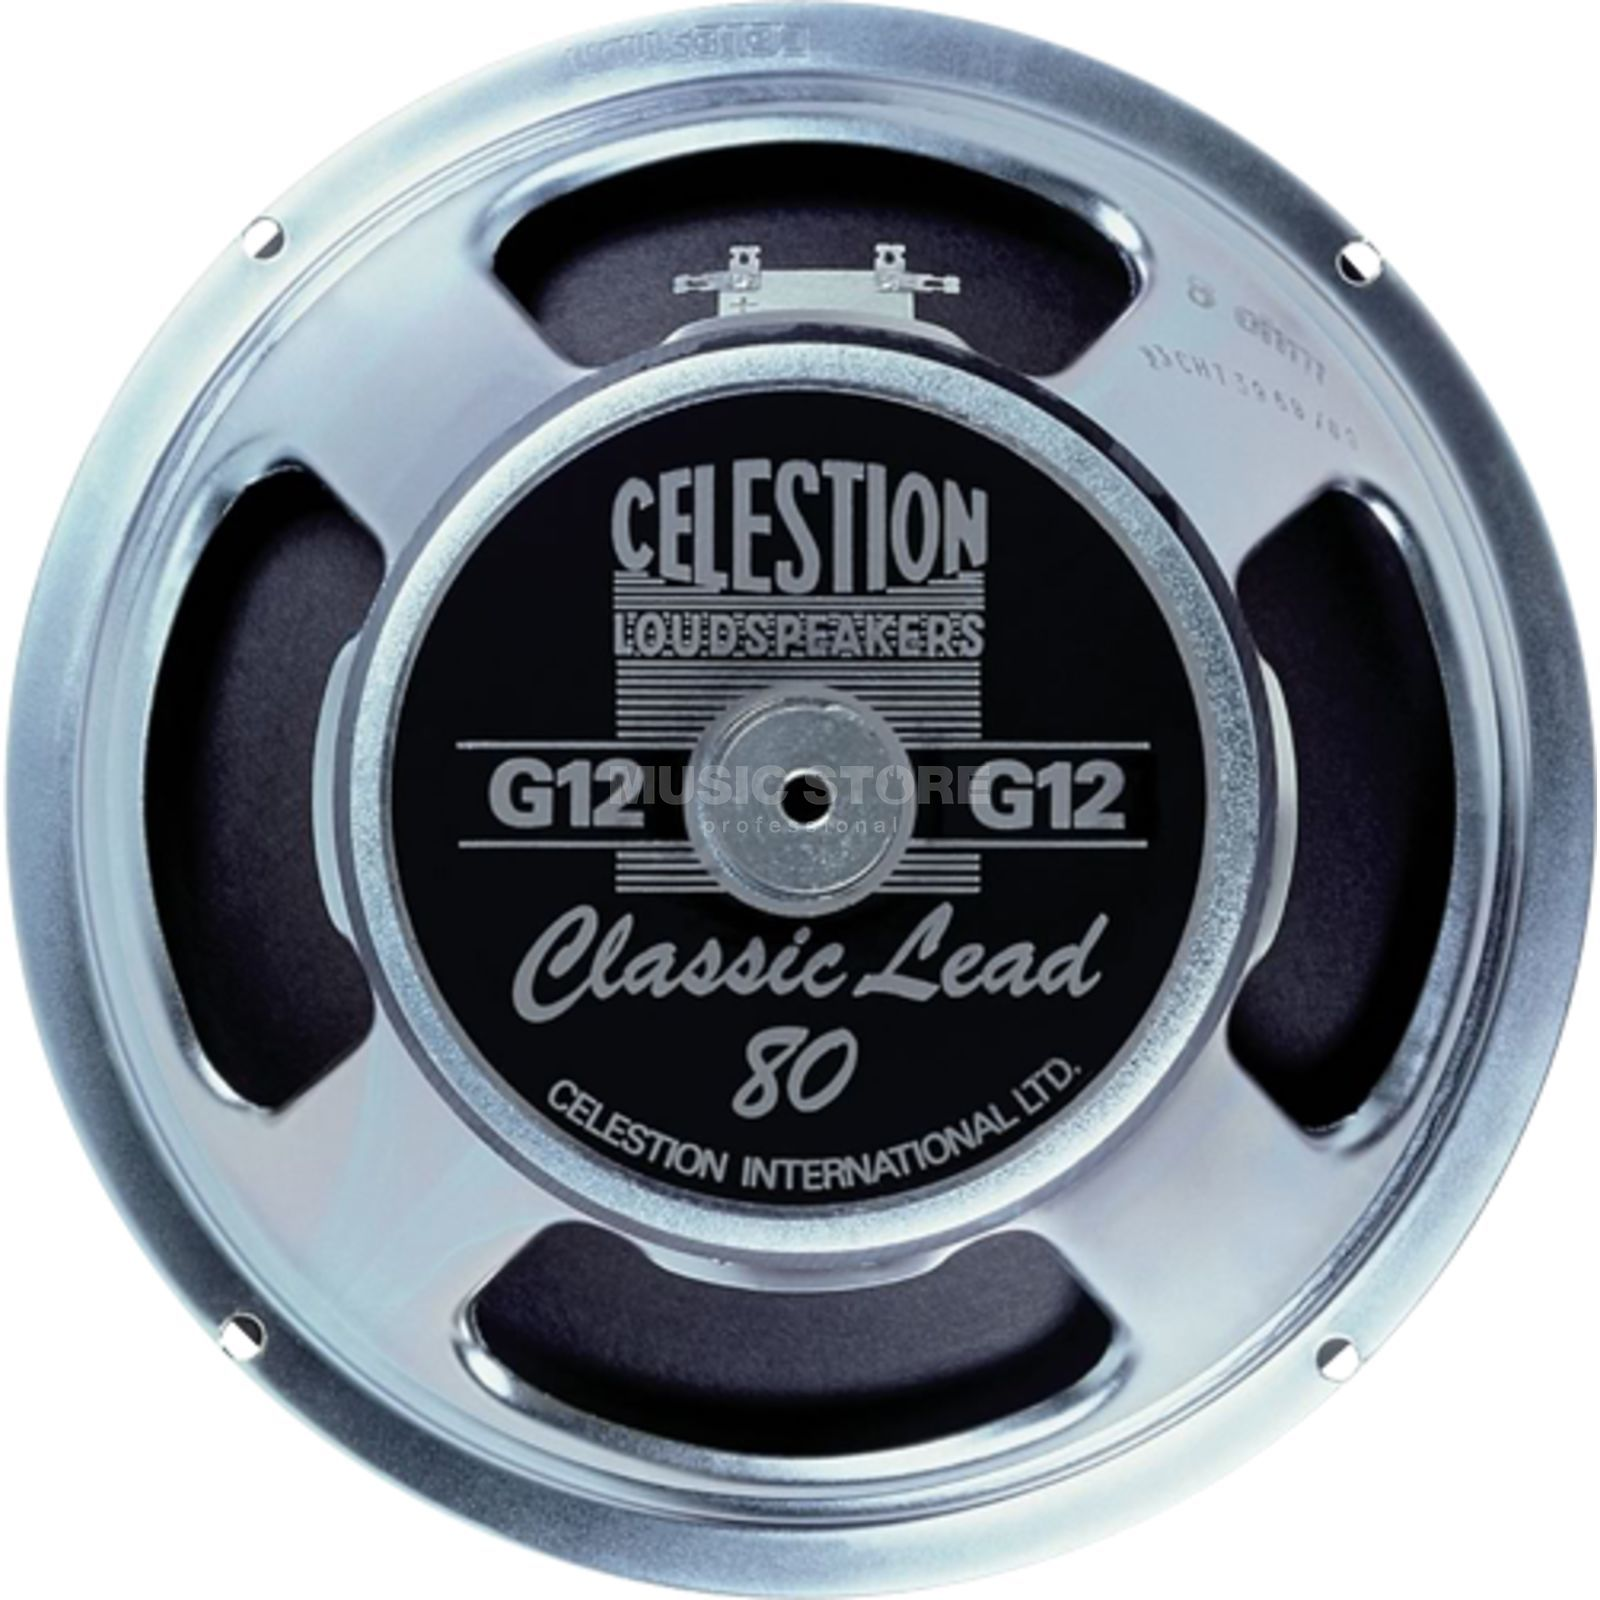 "Celestion Classic Lead 80 12"" Speaker 16 Ohm Produktbillede"